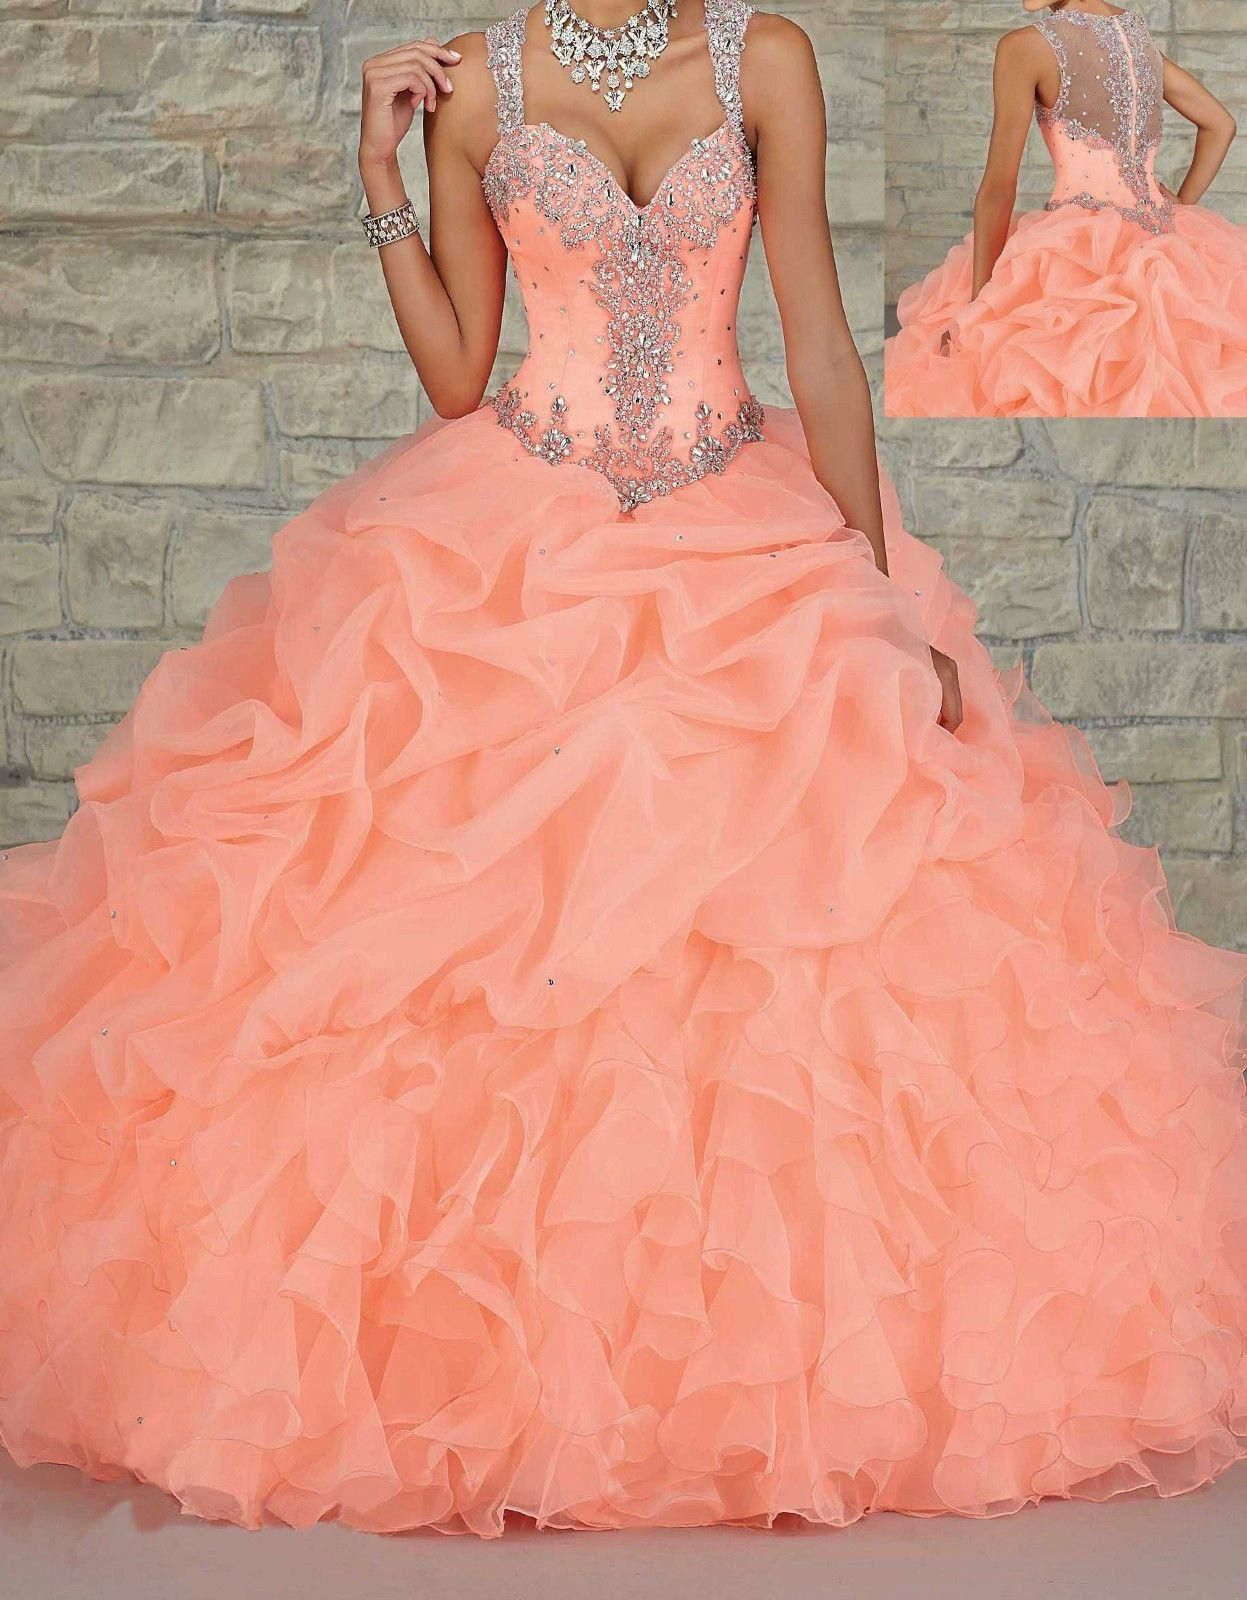 Custom Made 2015 Luxury Coral Quinceanera Dress Sexy Sweetheart Floor  Length Organza Crystal Beaded Long Prom Ball Gown Wedding Dresses Online  with ... 031712ec58b9